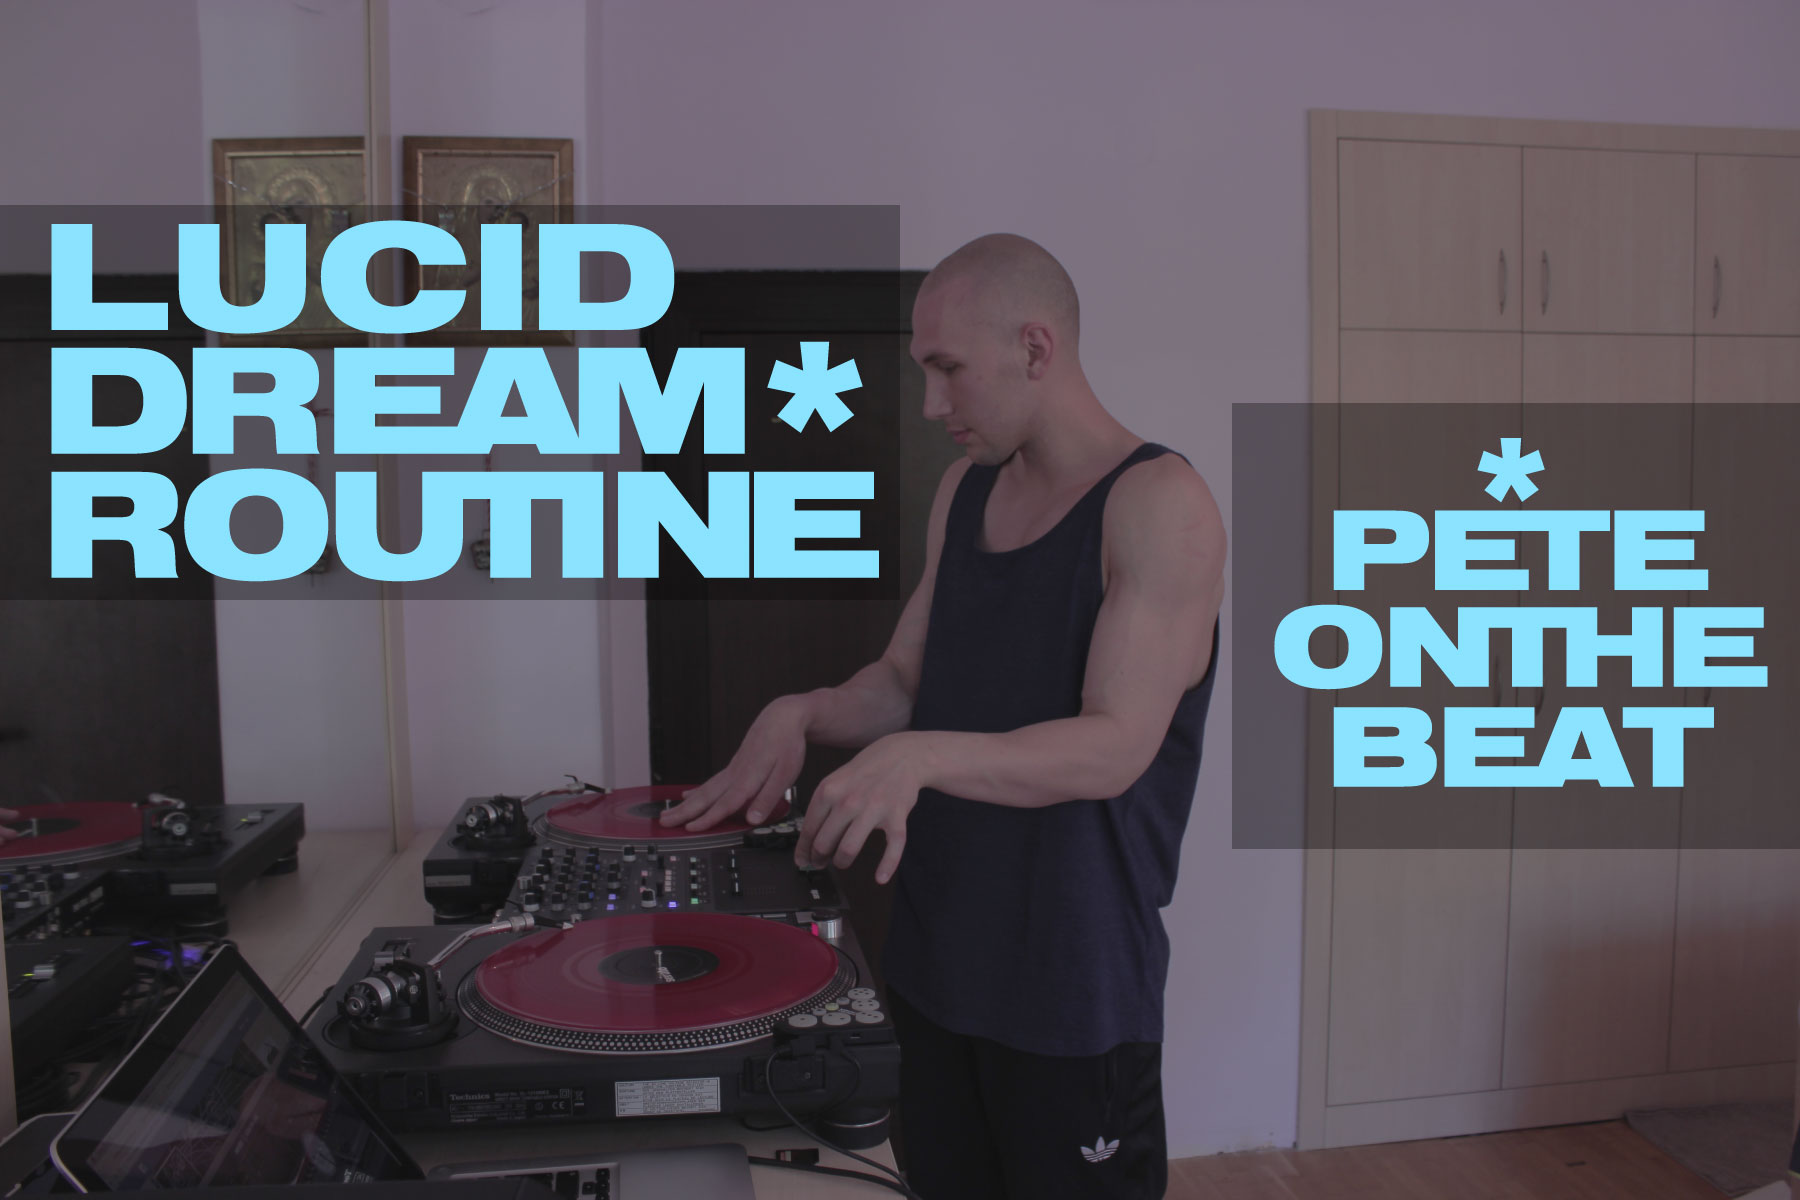 Peteonthebeat | Lucid Dream Routine - PETEONTHEBEAT